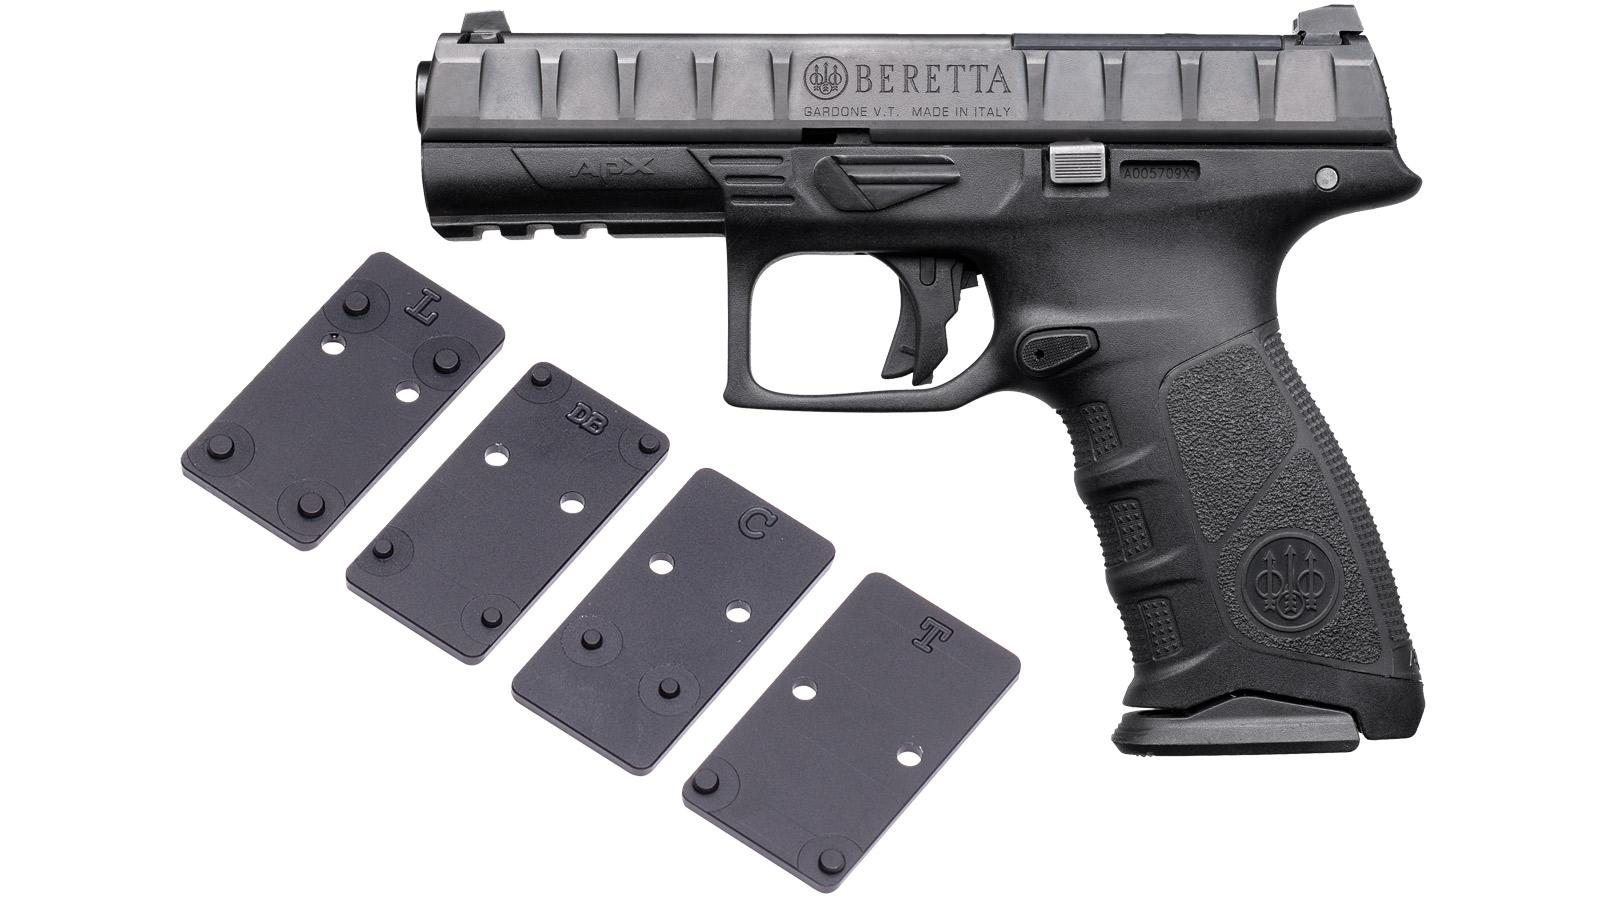 Beretta Usa Jax42170 Apx Rdo Single/Double 40 Smith & Wesson (S & W) 4.25